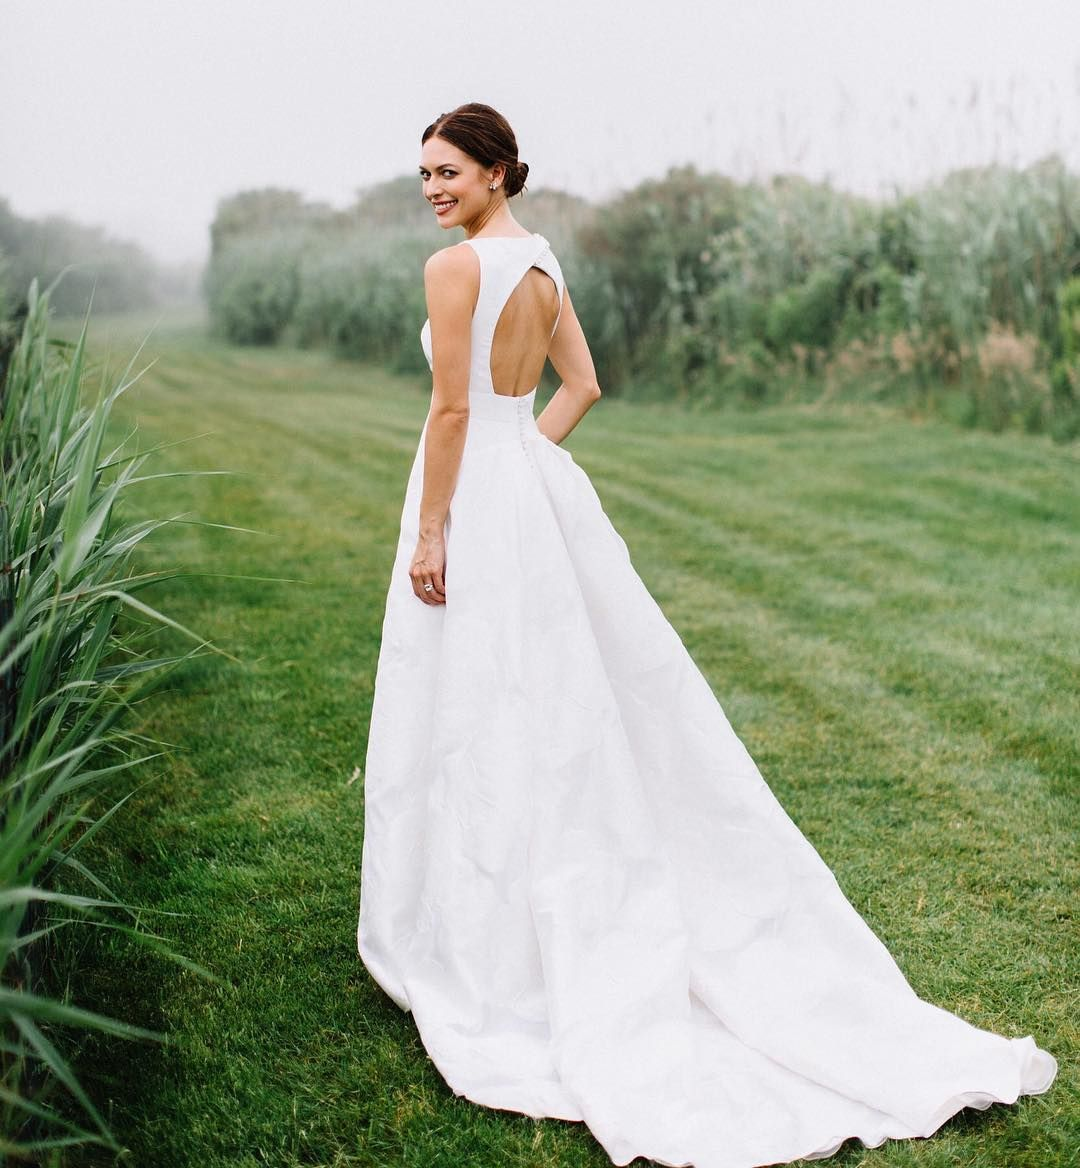 Wedding dress consignment shops near me  Pin by Jessica Rozsnyoi on Wedding  Pinterest  Lela rose Rose and